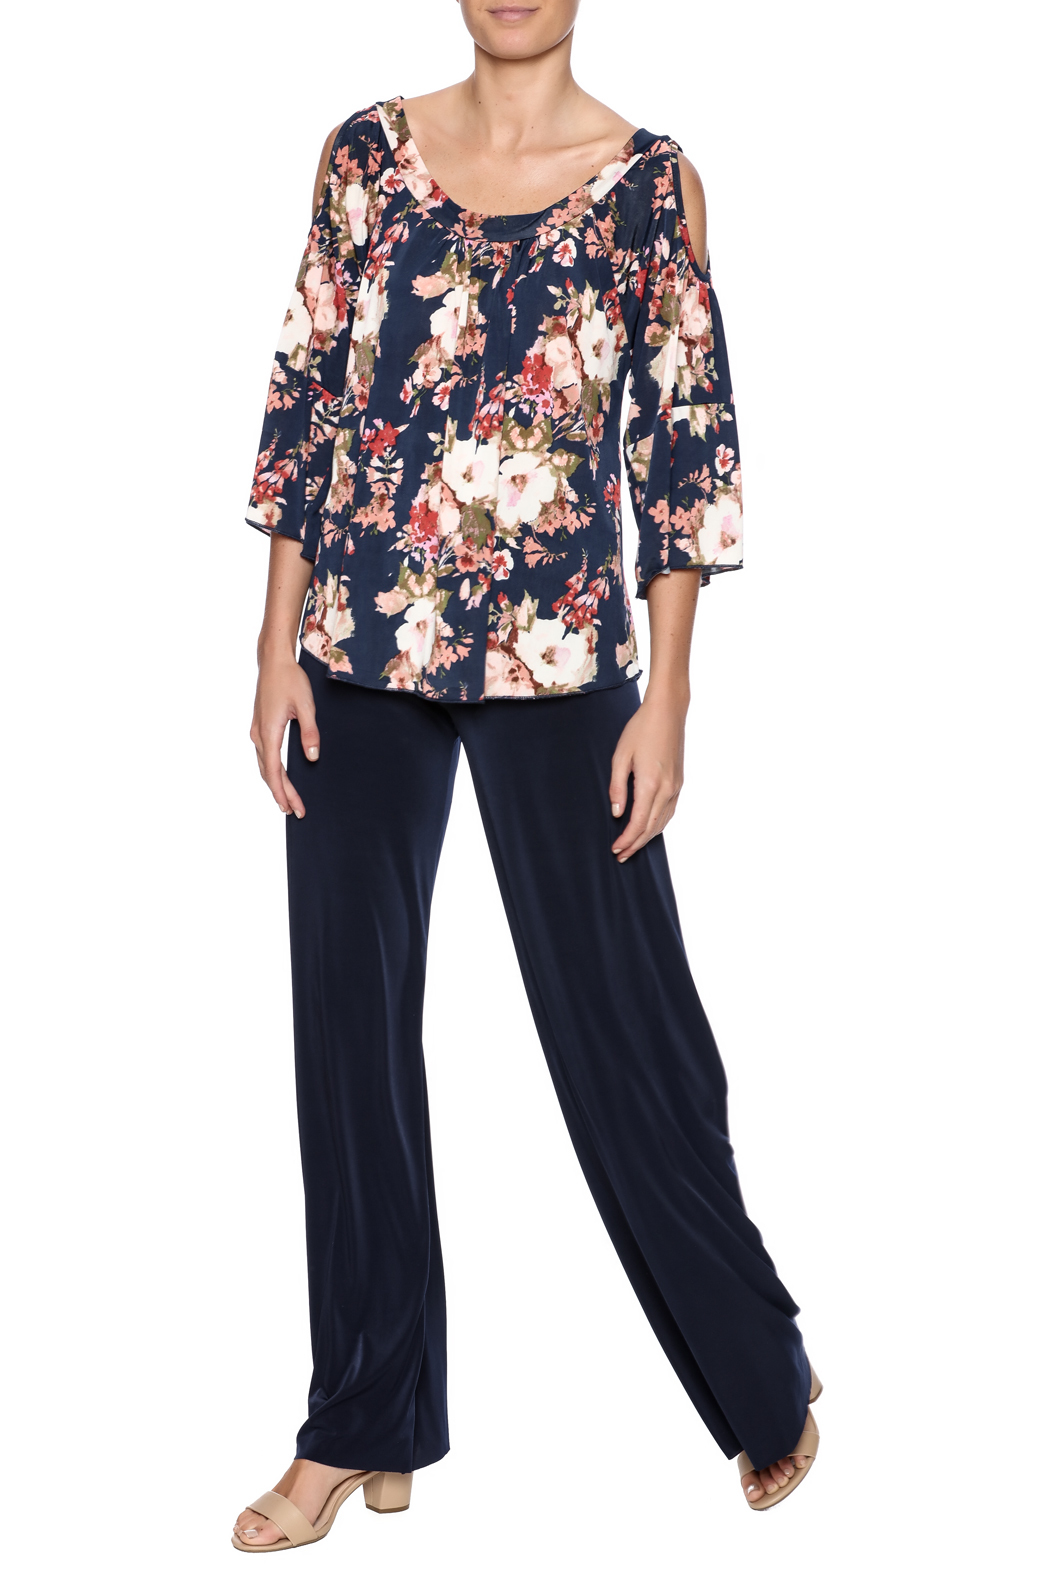 Veronica M Cold Shoulder Floral Top - Front Full Image